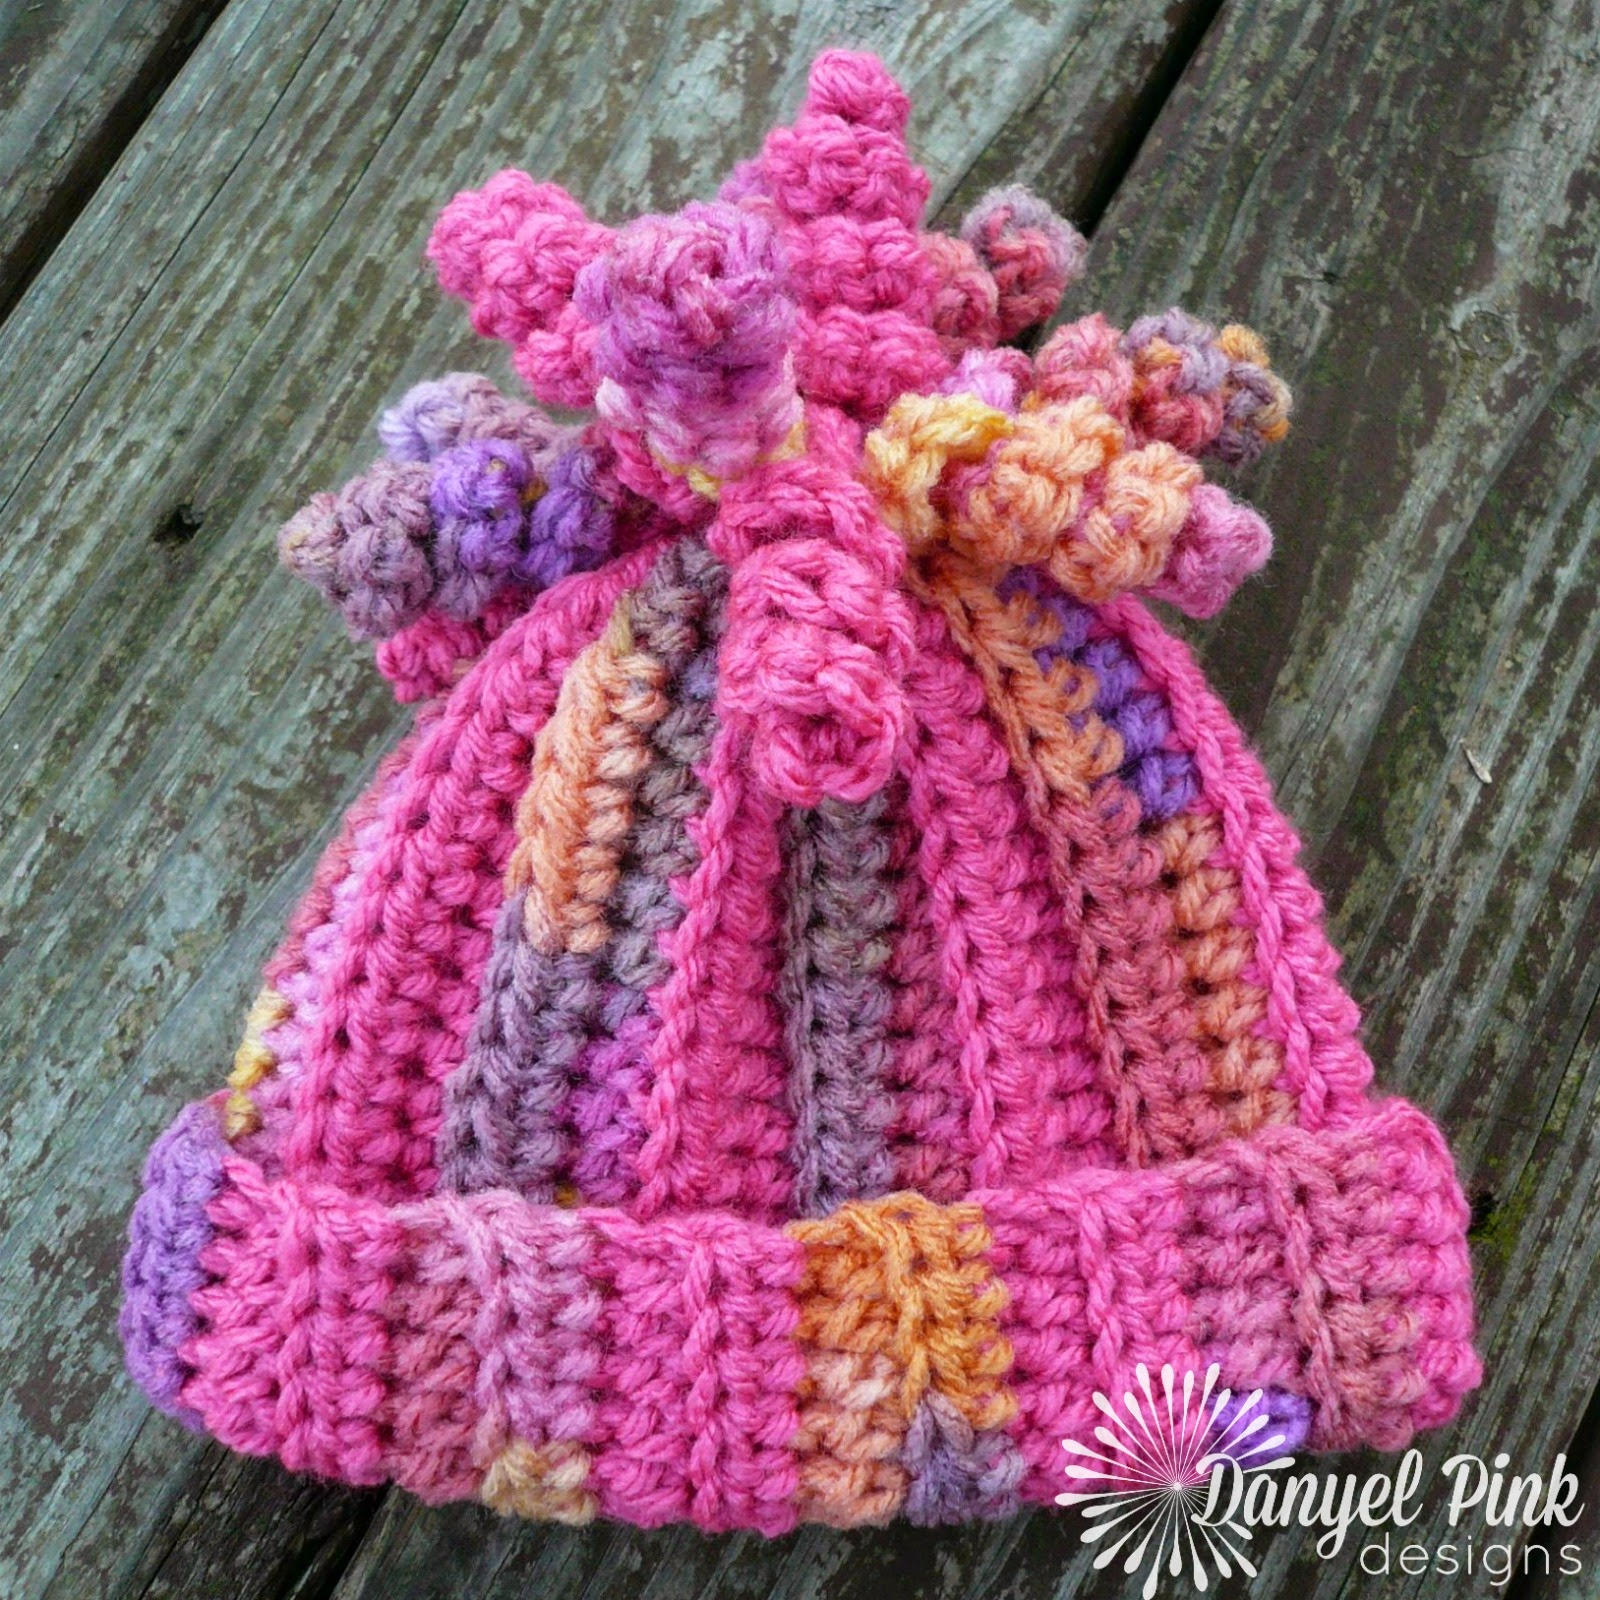 Danyel Pink Designs: CROCHET PATTERN - Delaney Hat